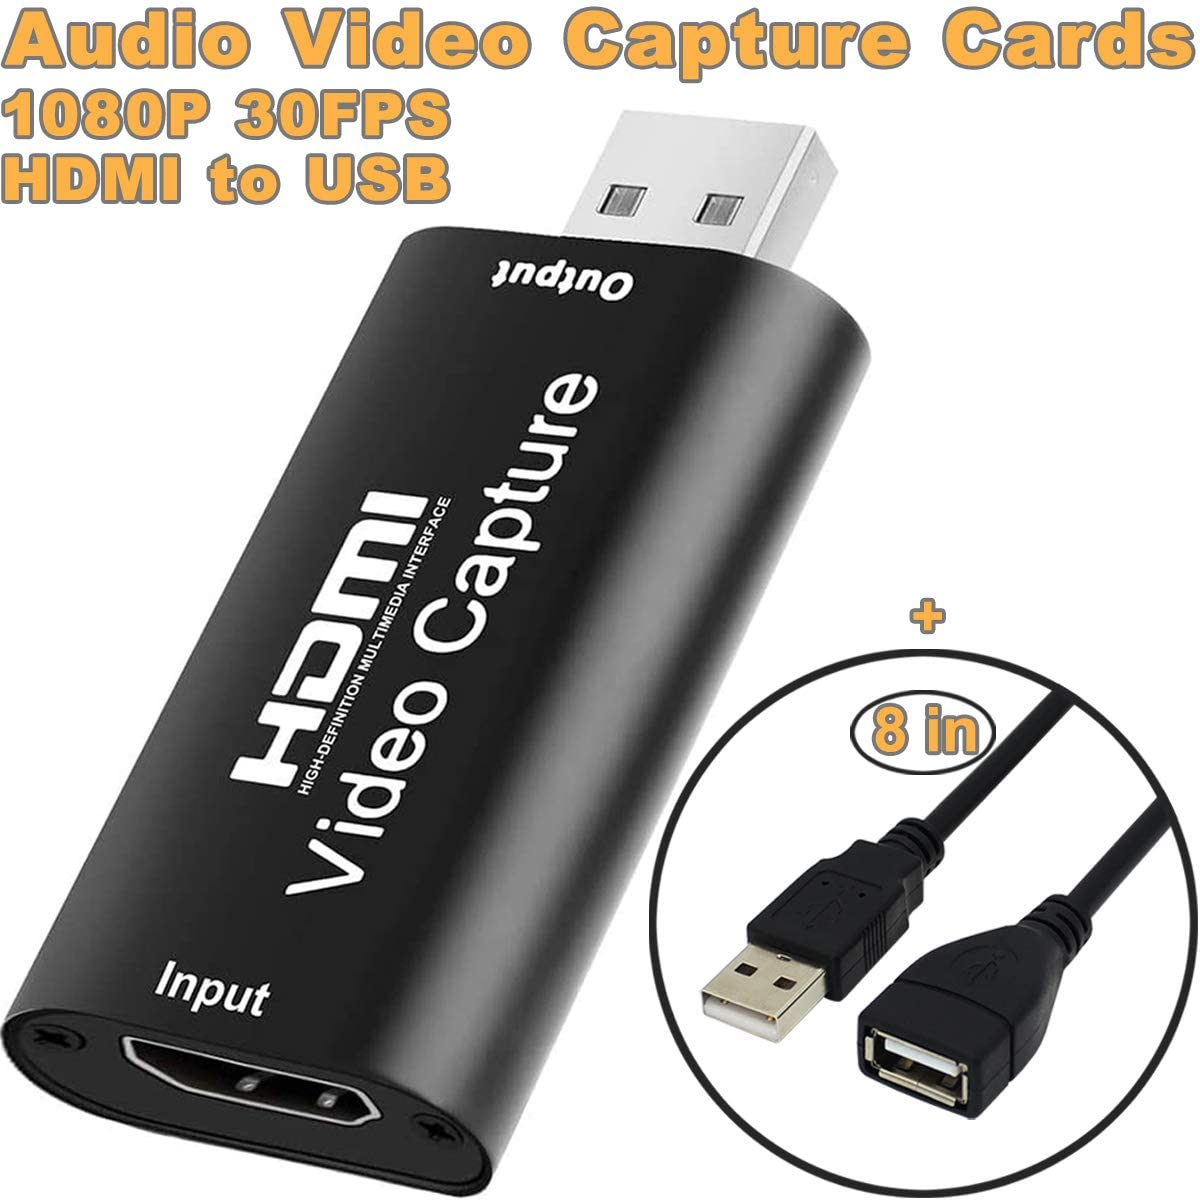 An example of a cheap HDMI capture dongle listing image from Amazon.